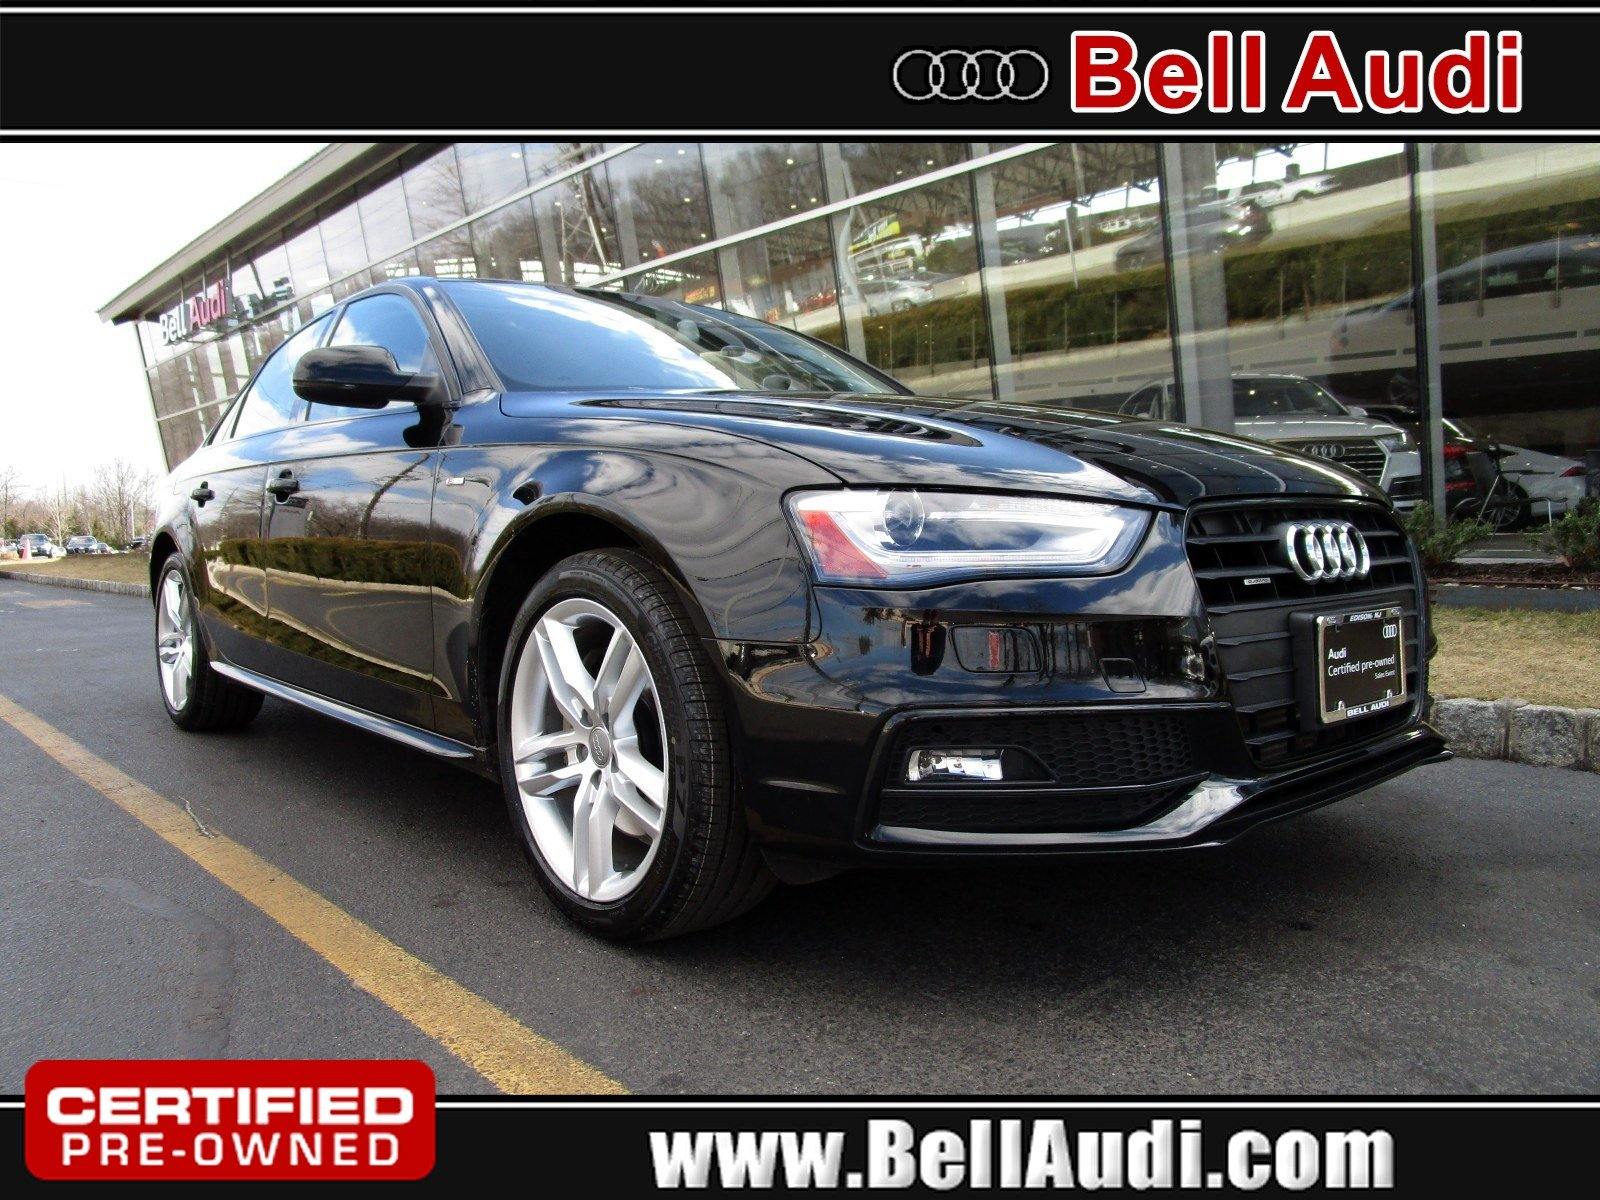 Audi A4 Coupe Certified 2016 Audi A4 2 0t Premium For Sale In Edison Nj Vin Waubfafl1gn012330